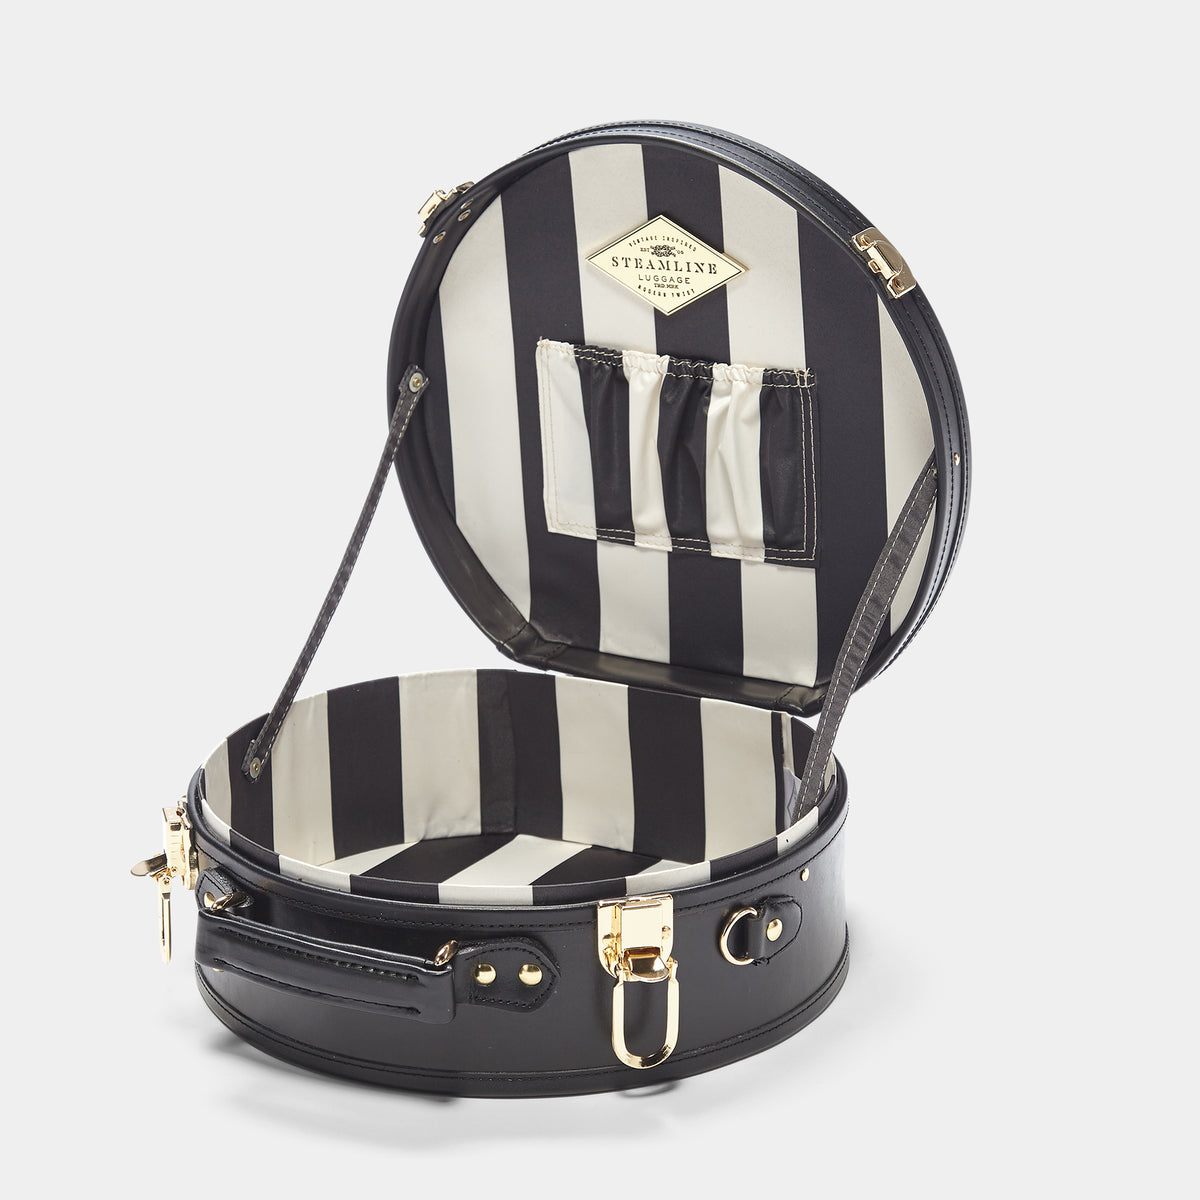 The alice + olivia X SteamLine in Black - Hat Box Luggage - Interior Front